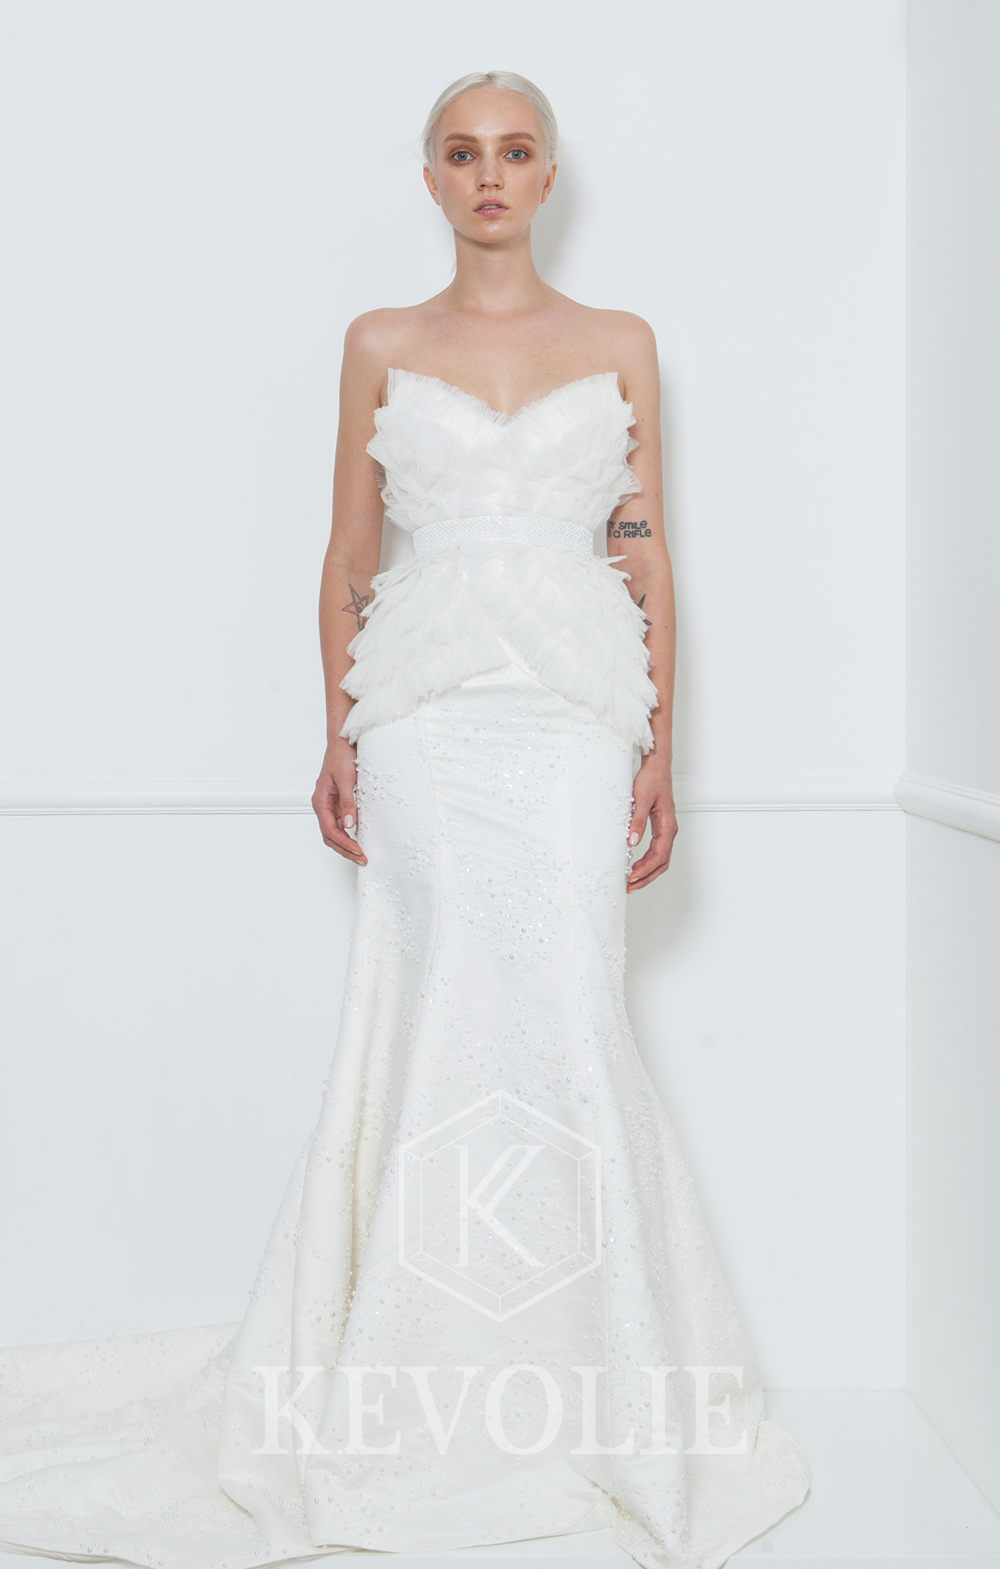 BRIDAL COLLECTION 2015-LOOK 11